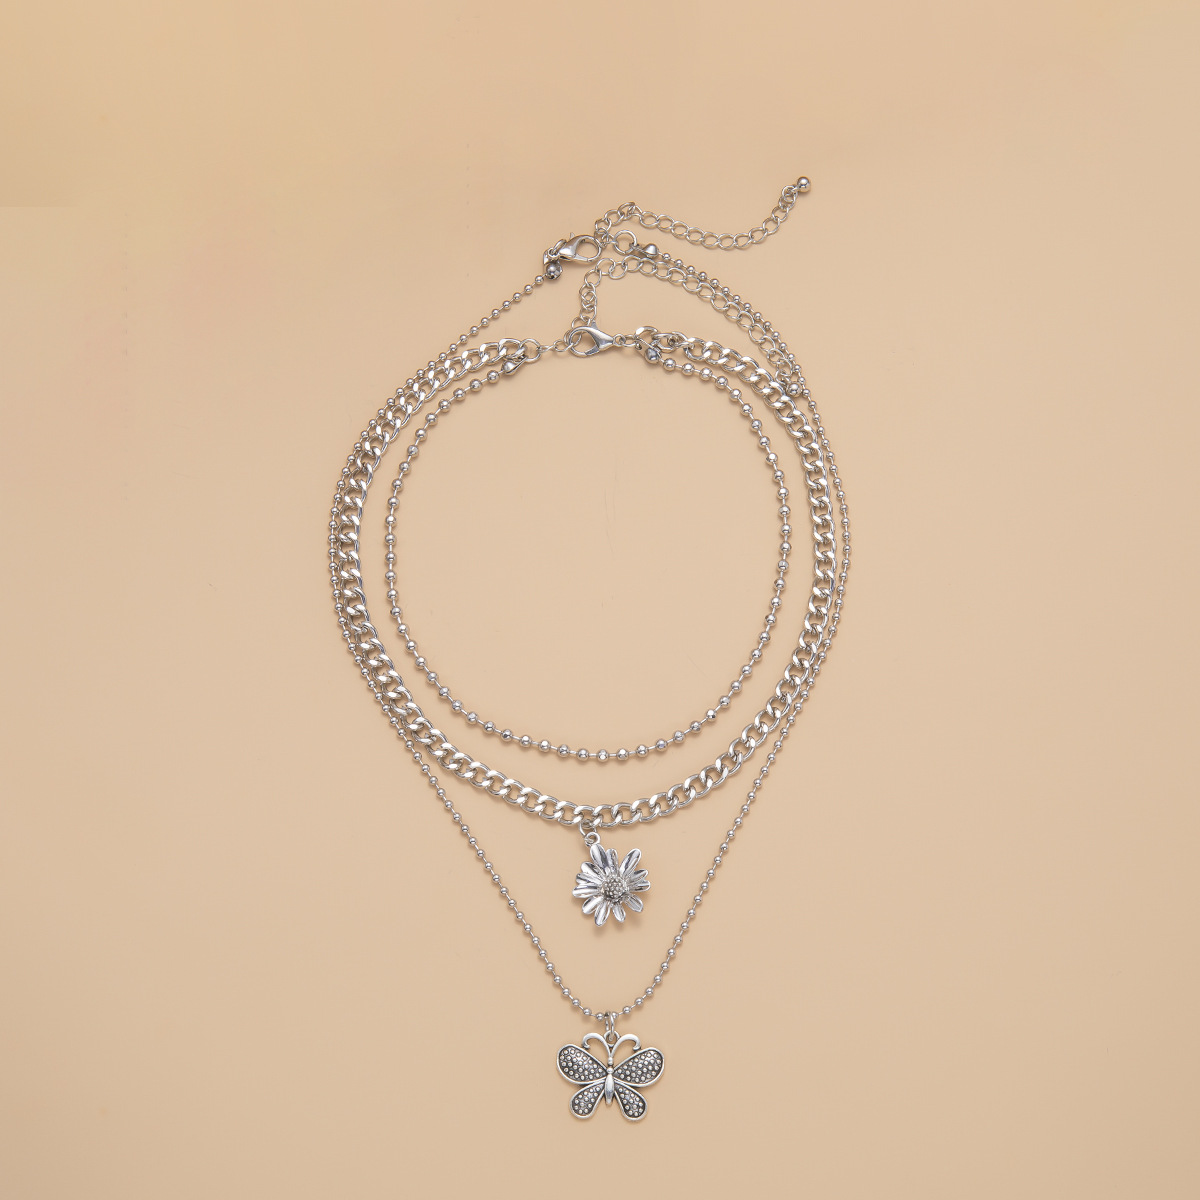 fashion jewelry creative butterfly necklace female simple three-dimensional small daisy multi-layer necklace wholesale nihaojewelry NHXR224618